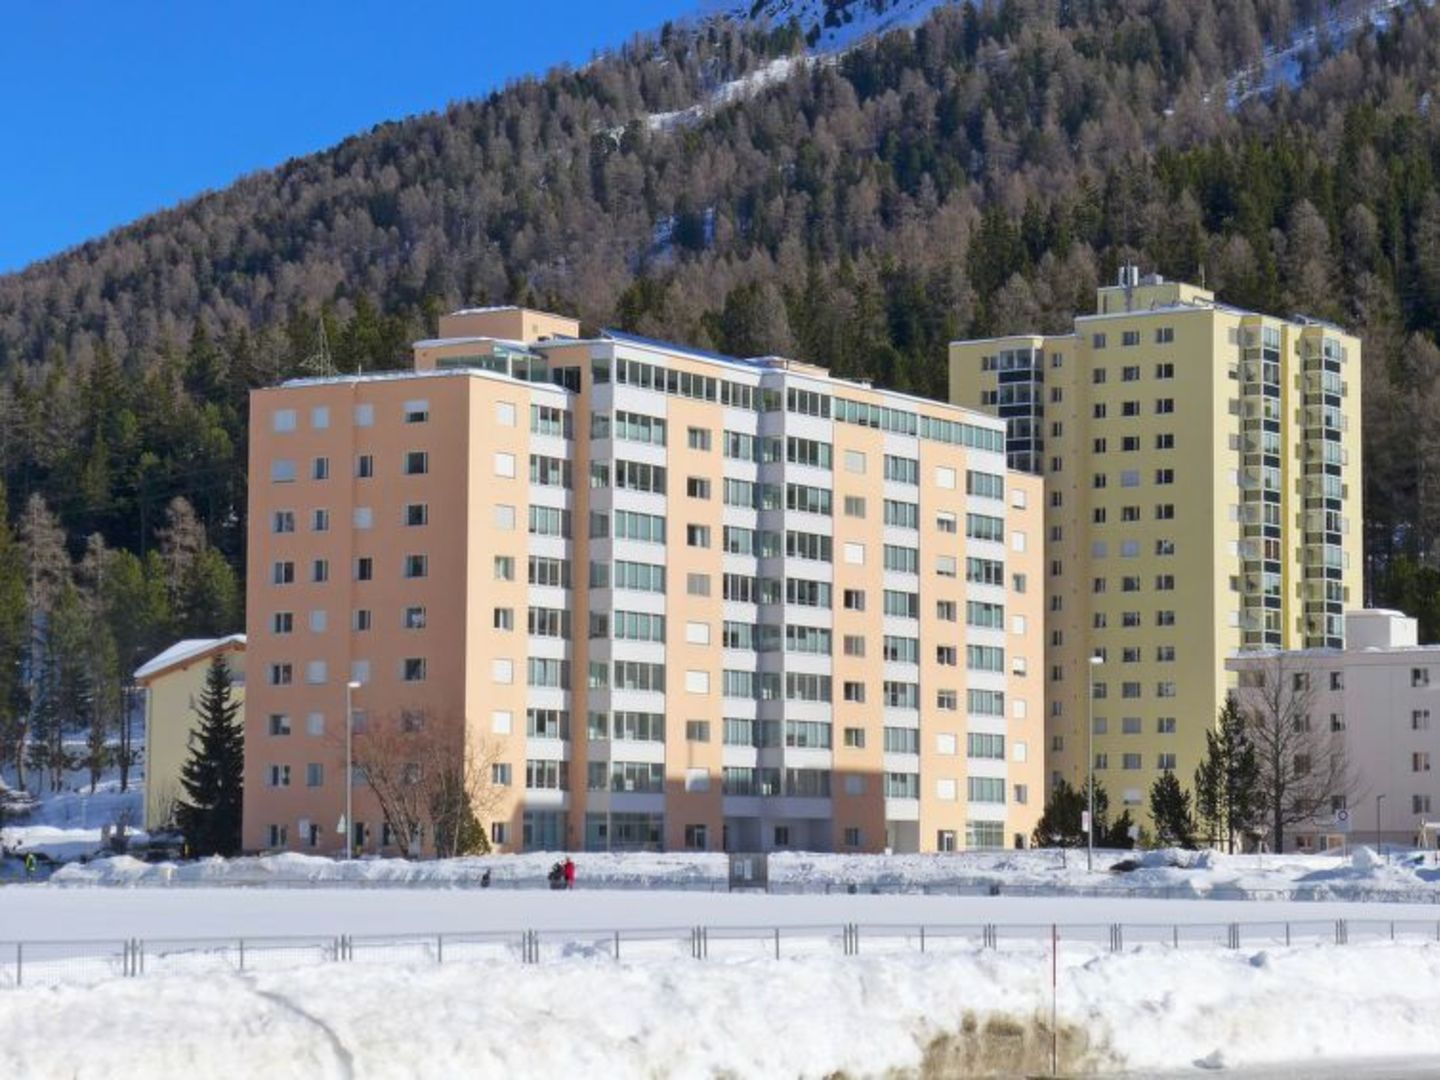 Apartment for rent in St.Moritz-Bad